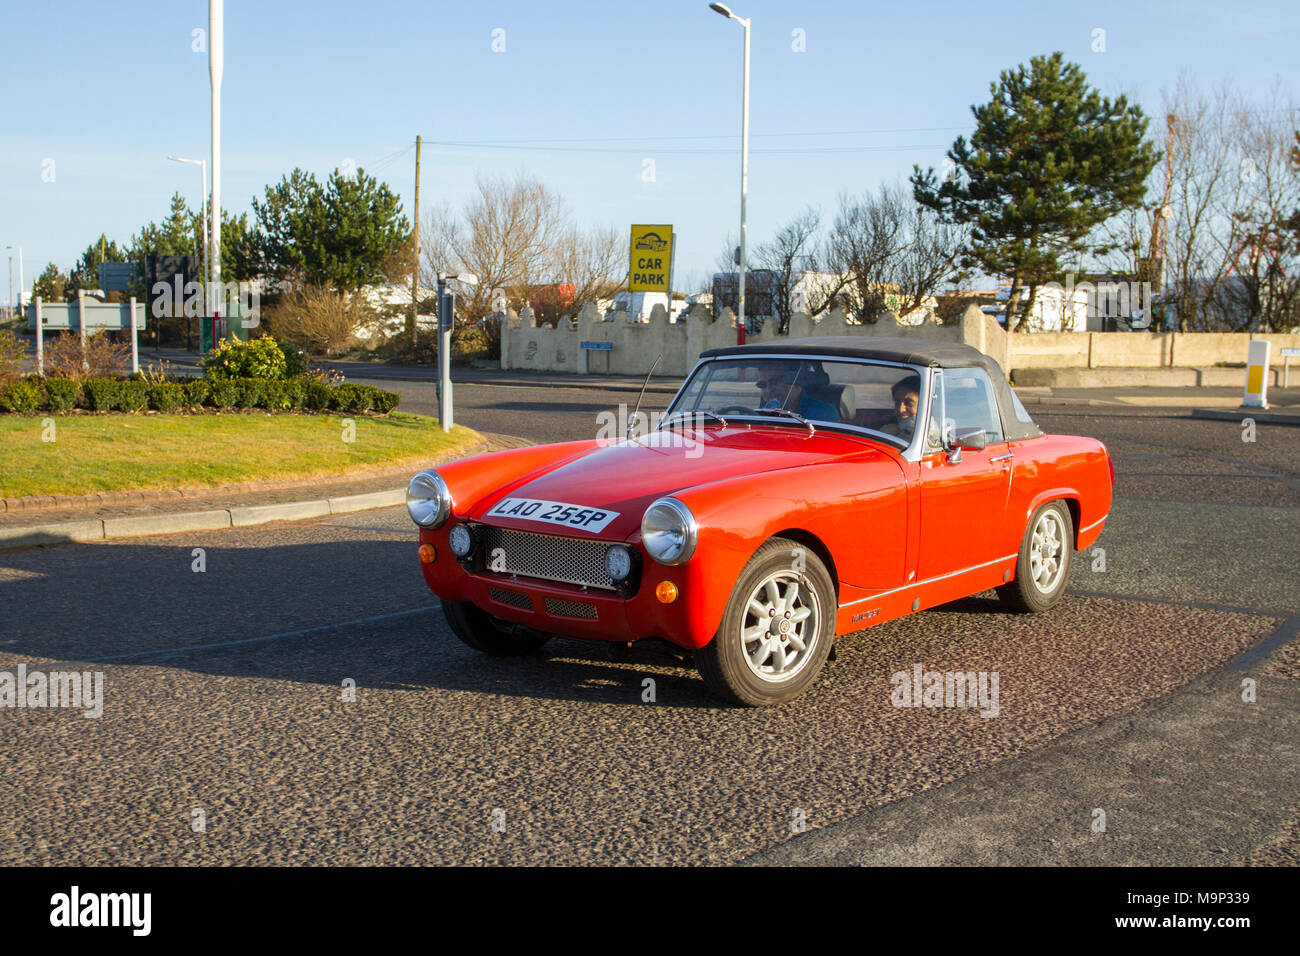 North-West Supercar event as hundreds of cars and tourists arrive in the coastal resort on a warm spring day. SuperCars are bumper to bumper on the seafront esplanade as classic & vintage car enthusiasts enjoy a motoring day out. - Stock Image